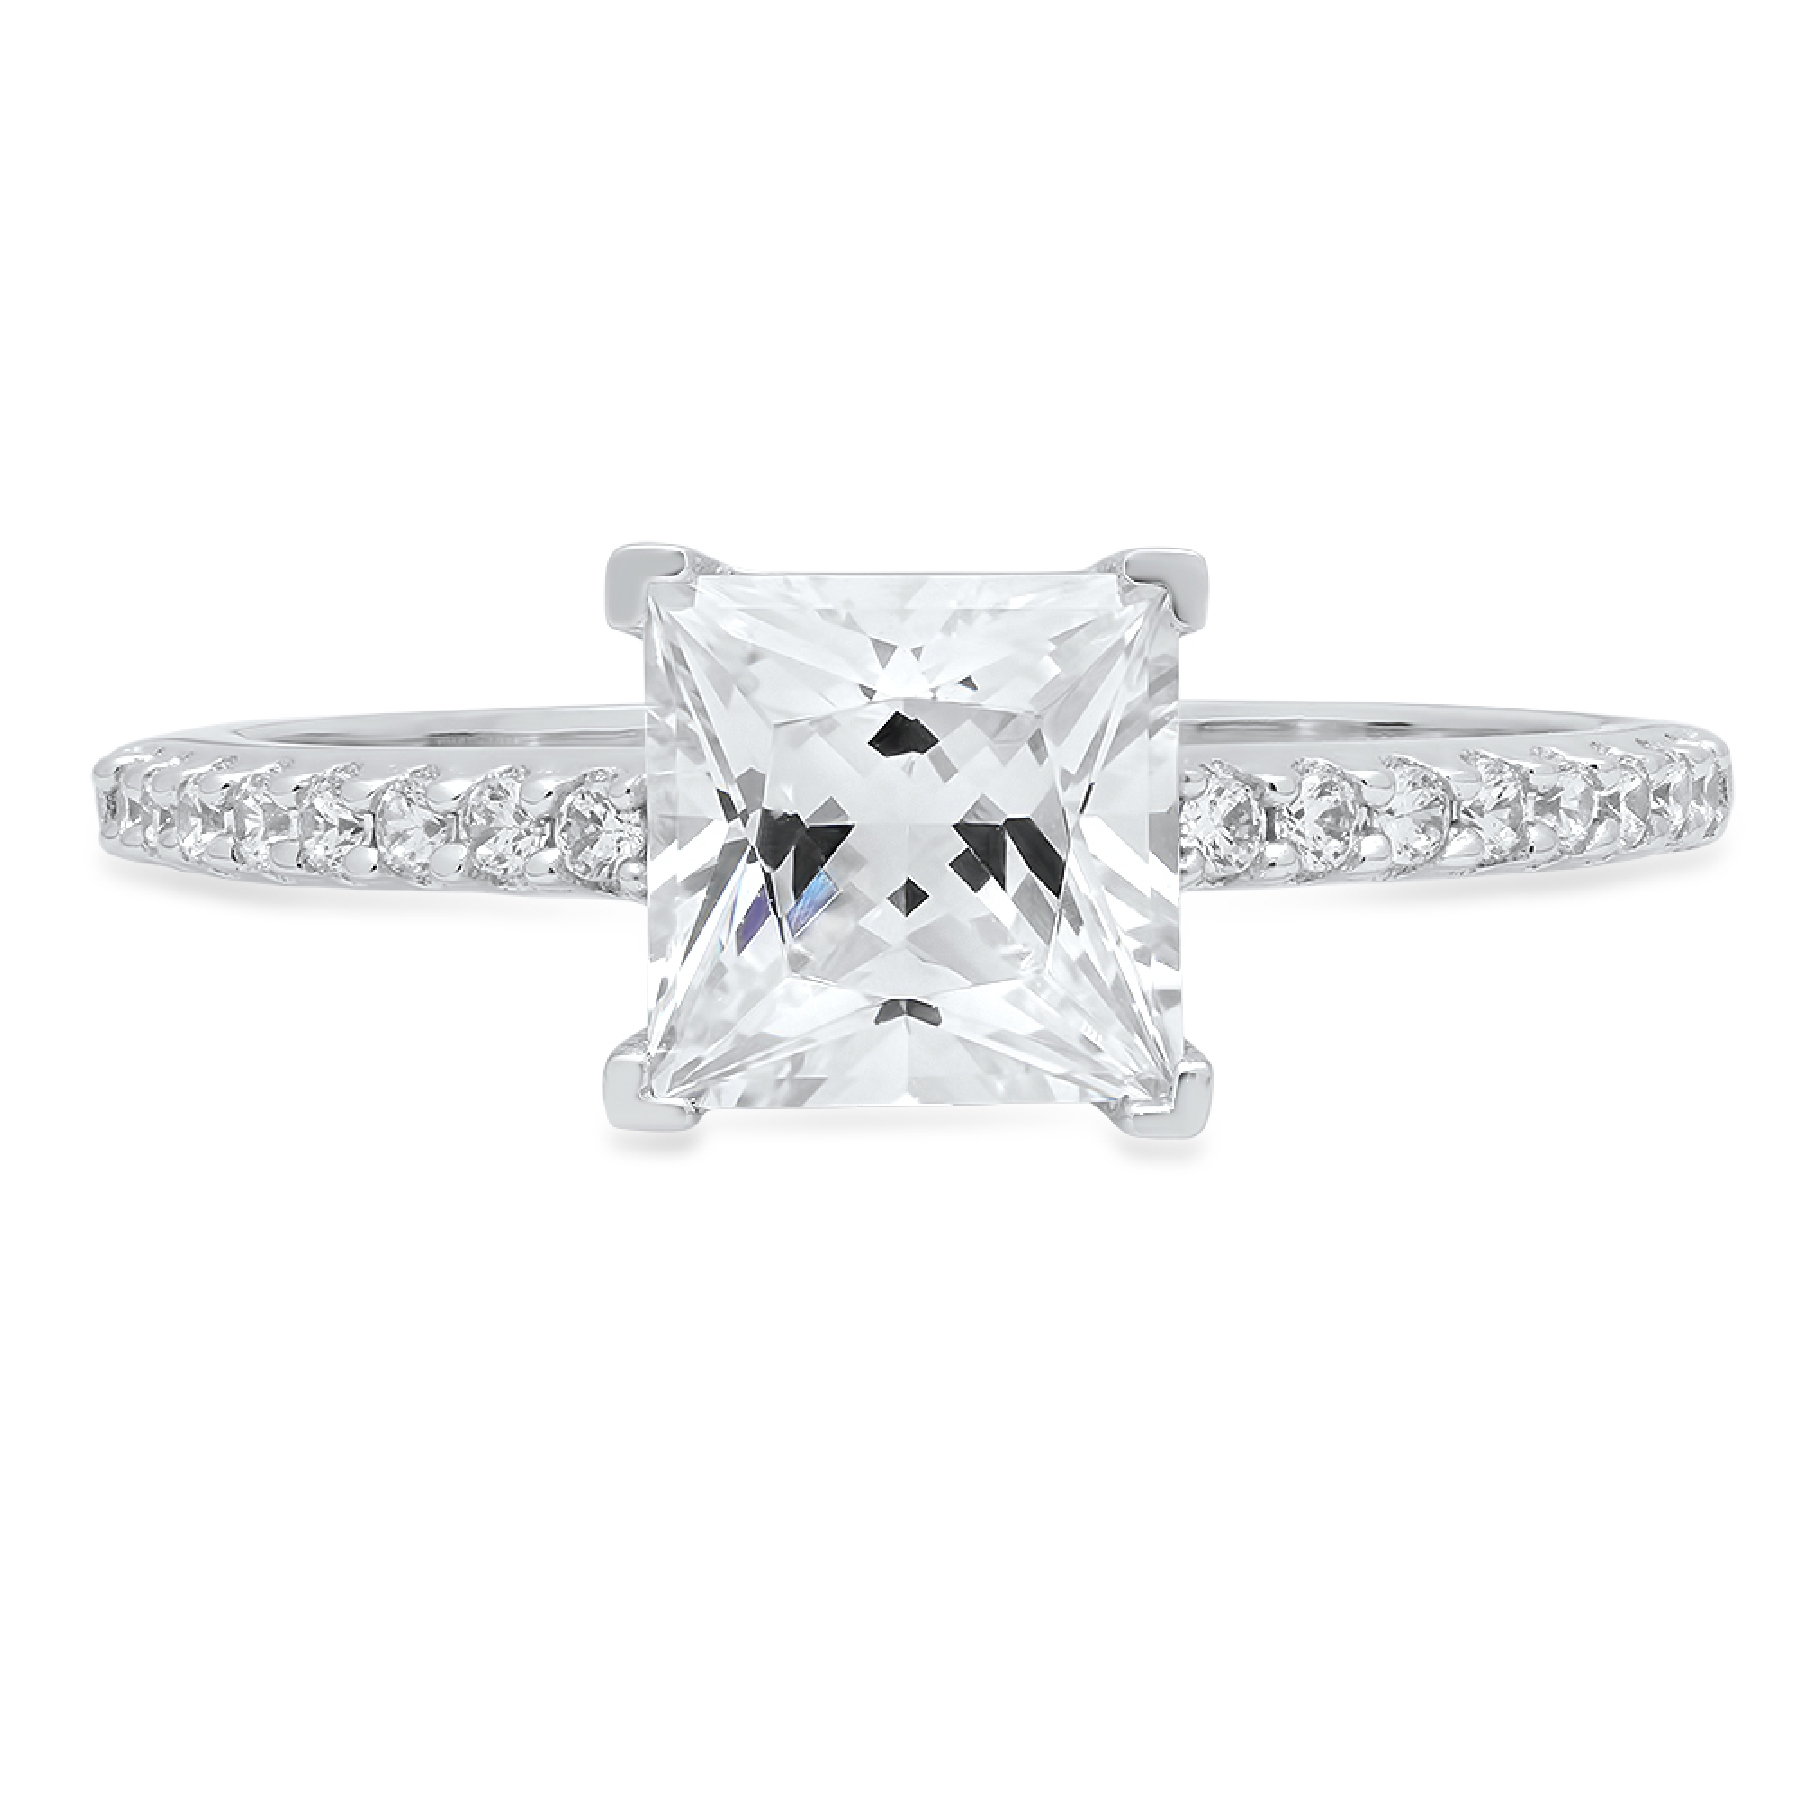 1-66-Princess-Solitaire-Engagement-Wedding-Bridal-Promise-Ring-14k-White-Gold